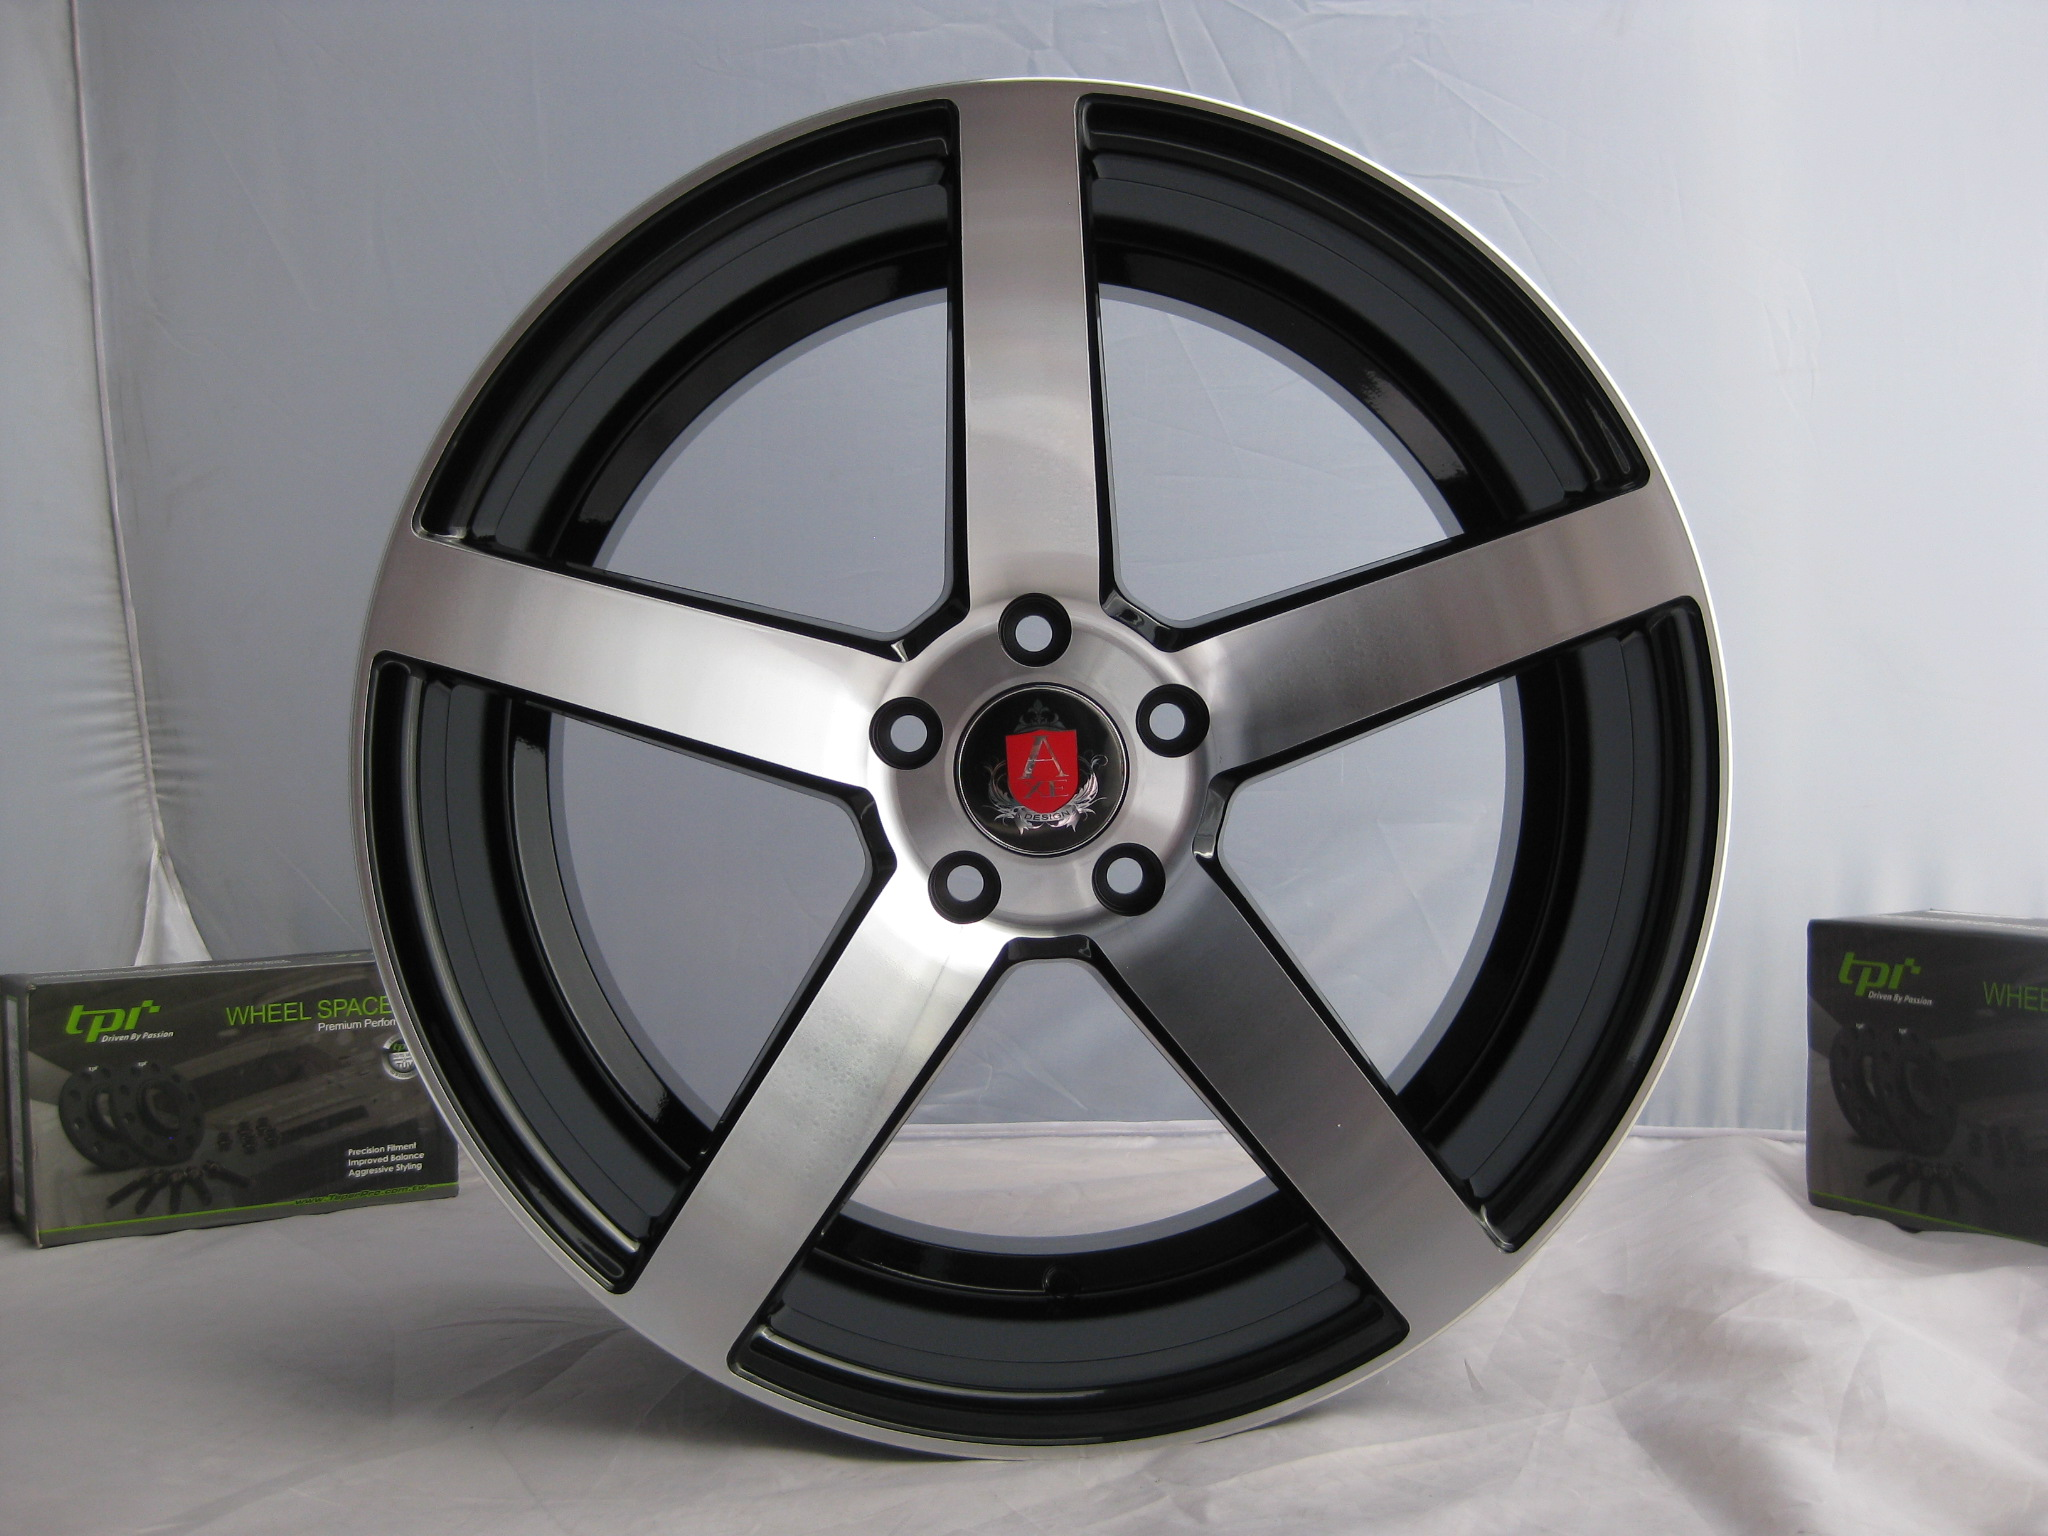 "NEW 19"" AXE EX18 DEEP CONCAVE ALLOY WHEELS IN GLOSS BLACK WITH POLISHED FACE, DEEP DISH, WIDER 9.5"" REAR"